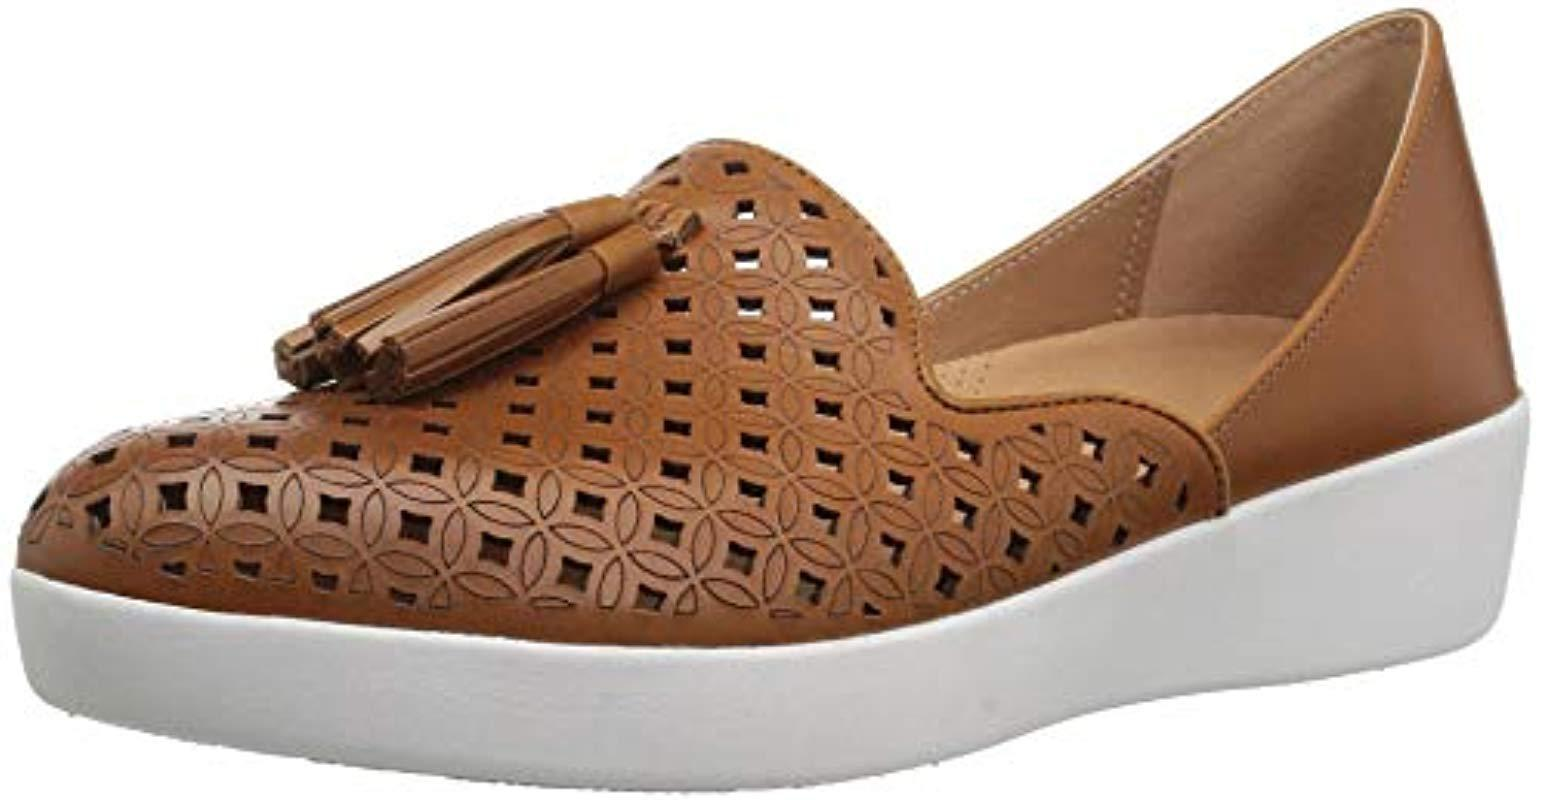 3cbd98b671d Fitflop. Women s Brown Tassel Superskate D orsay Loafers-latticed Leather